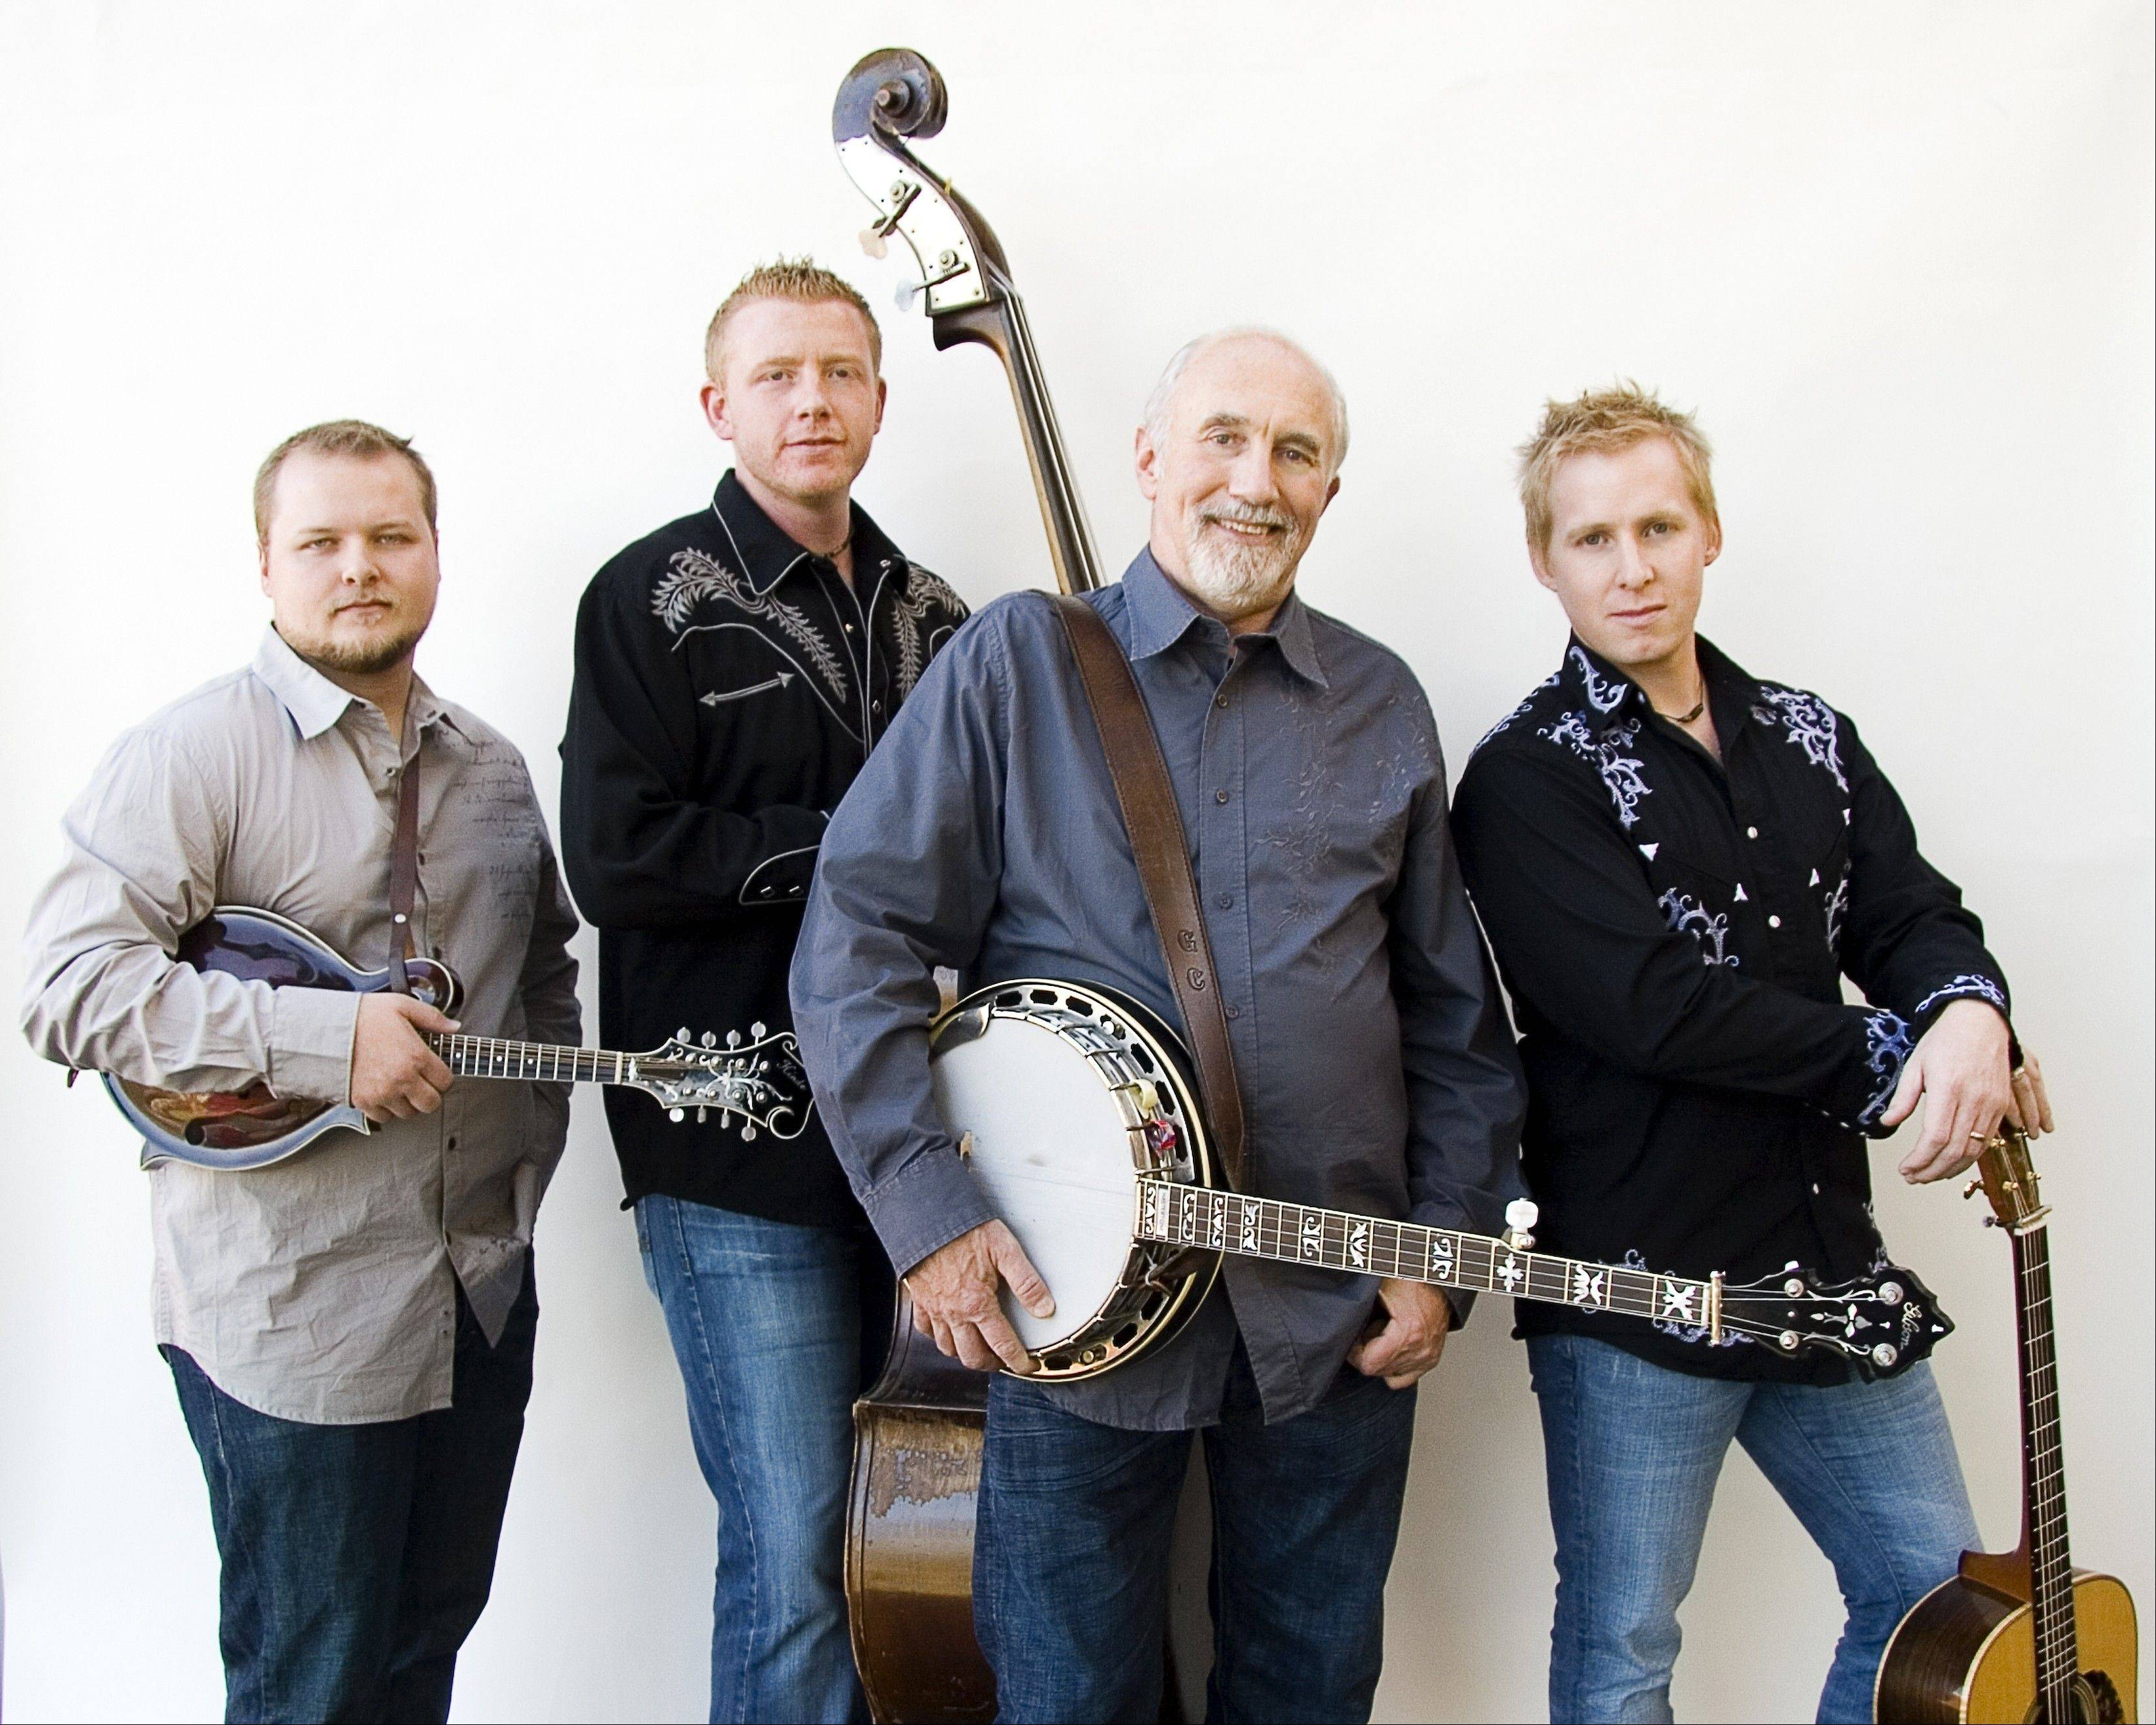 The Special Consensus Bluegrass Band will perform at 4 p.m. Sunday, July 7, at the Sunset Foods Pavilion in Long Grove.